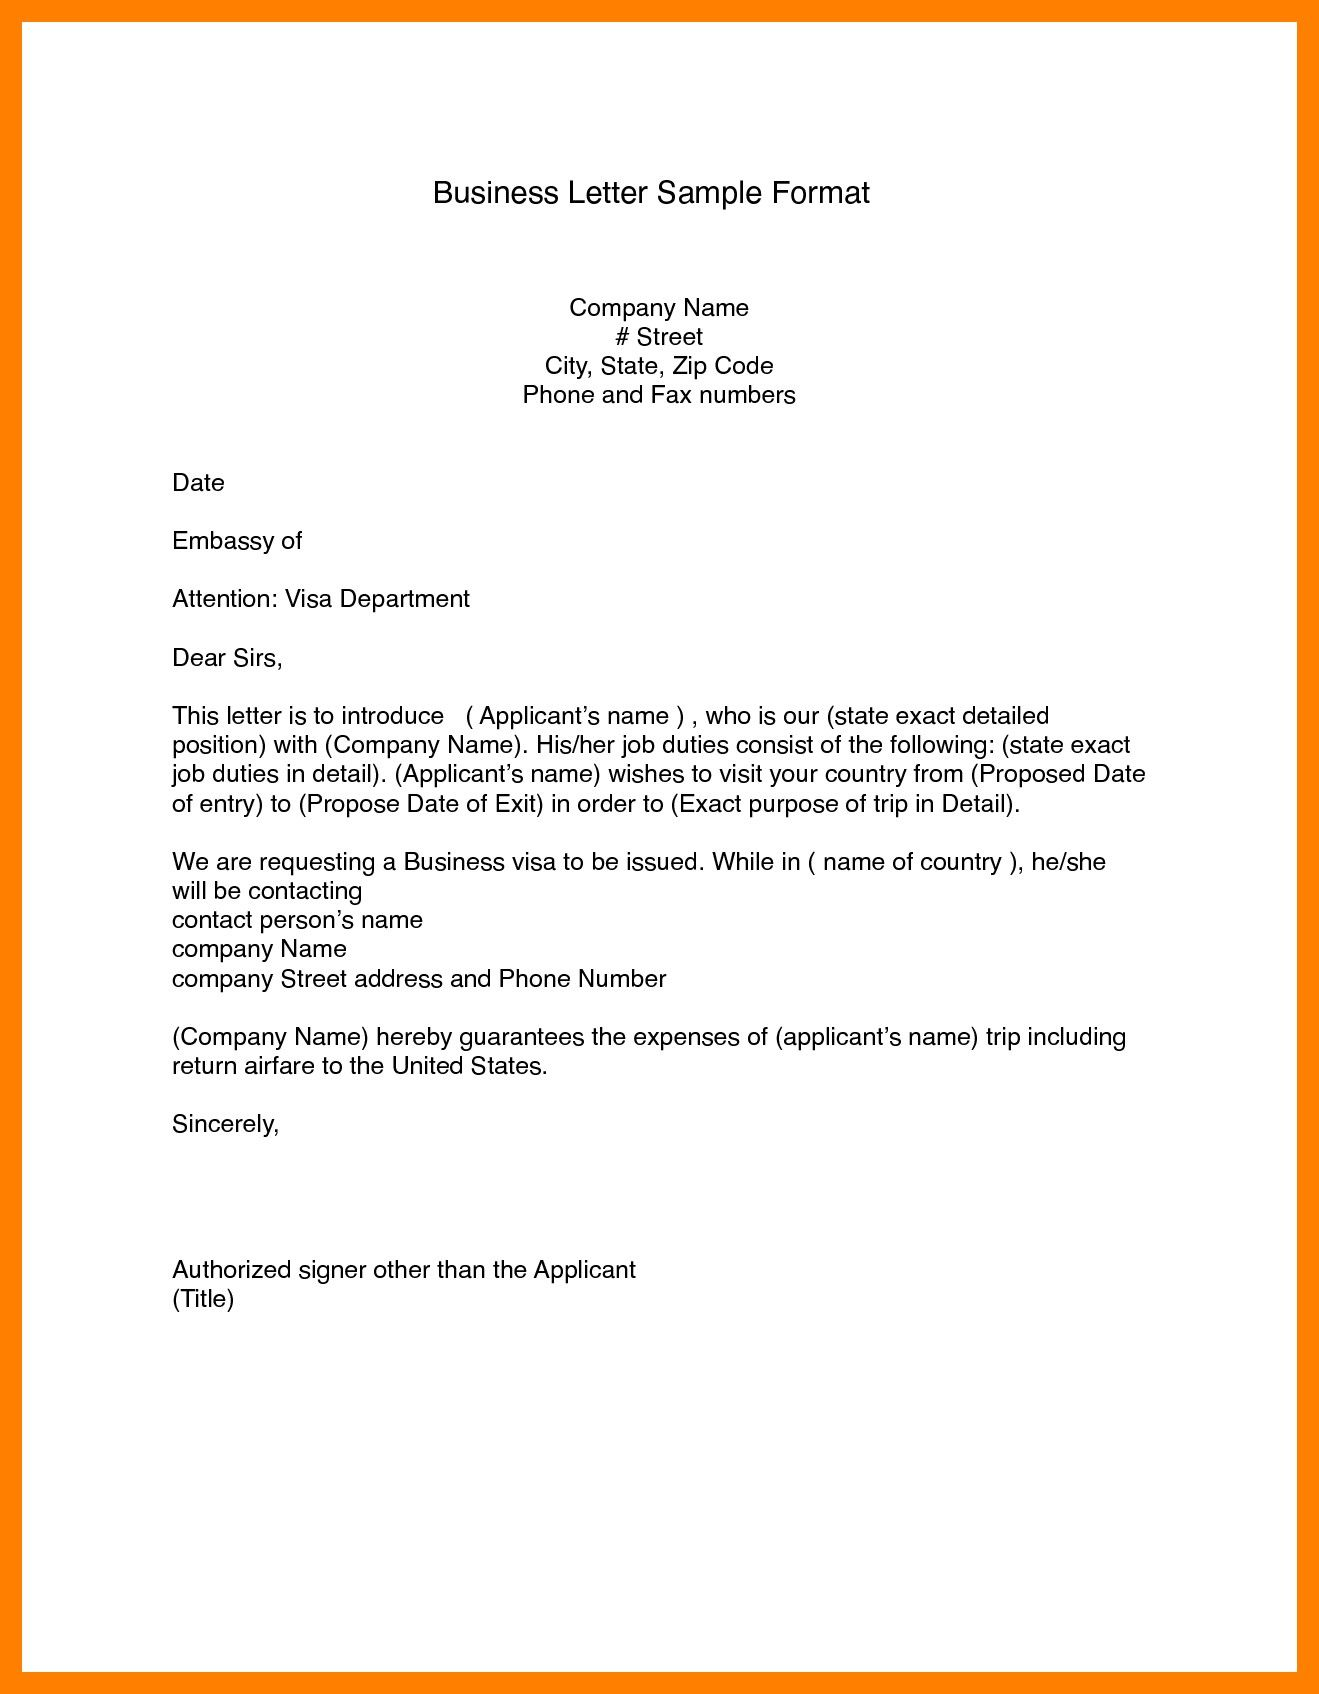 Valid Formative Letter In Hindi Language Formal Business Letter Business Letter Format Business Letter